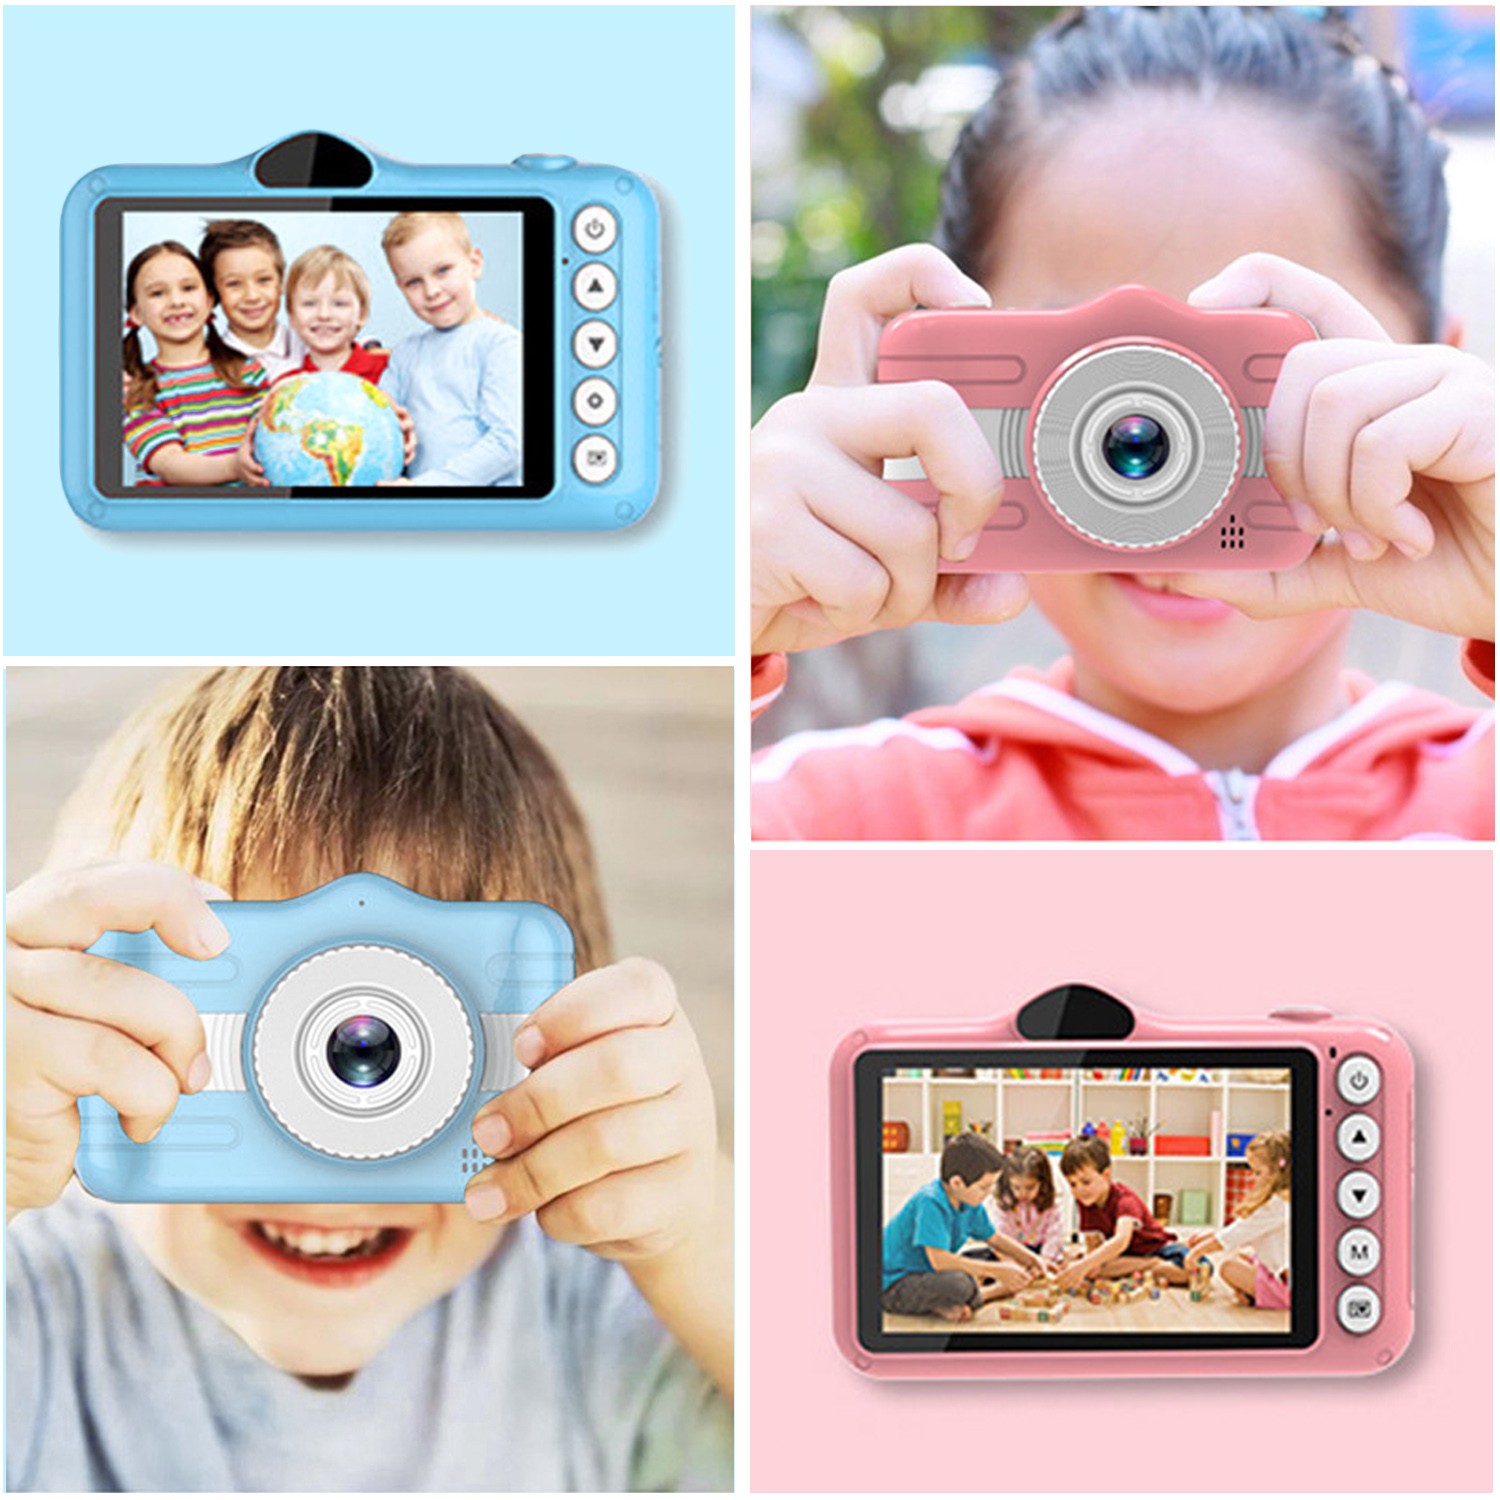 Gosear Kids Camera 1080P 800W Digital Camera Rechargeable Video Camcorder with 3.5 Inch IPS Screen for Children Birthday Gifts image